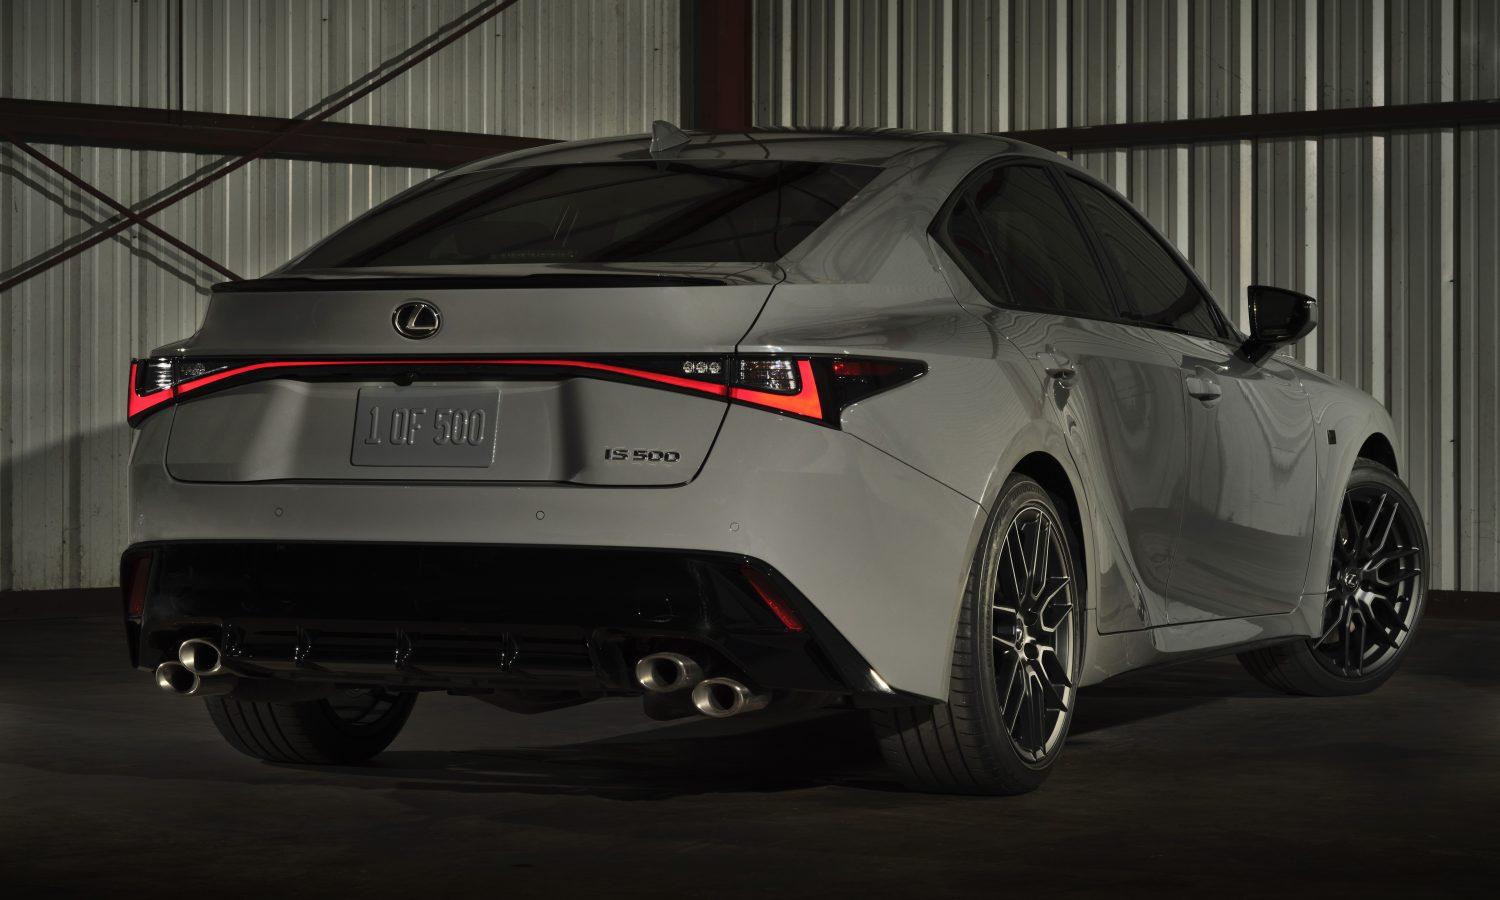 2022 LEXUS IS 500 F SPORT<br> Performance Launch Edition:<br> IS 500 Performance with a <br>Touch of Distinction